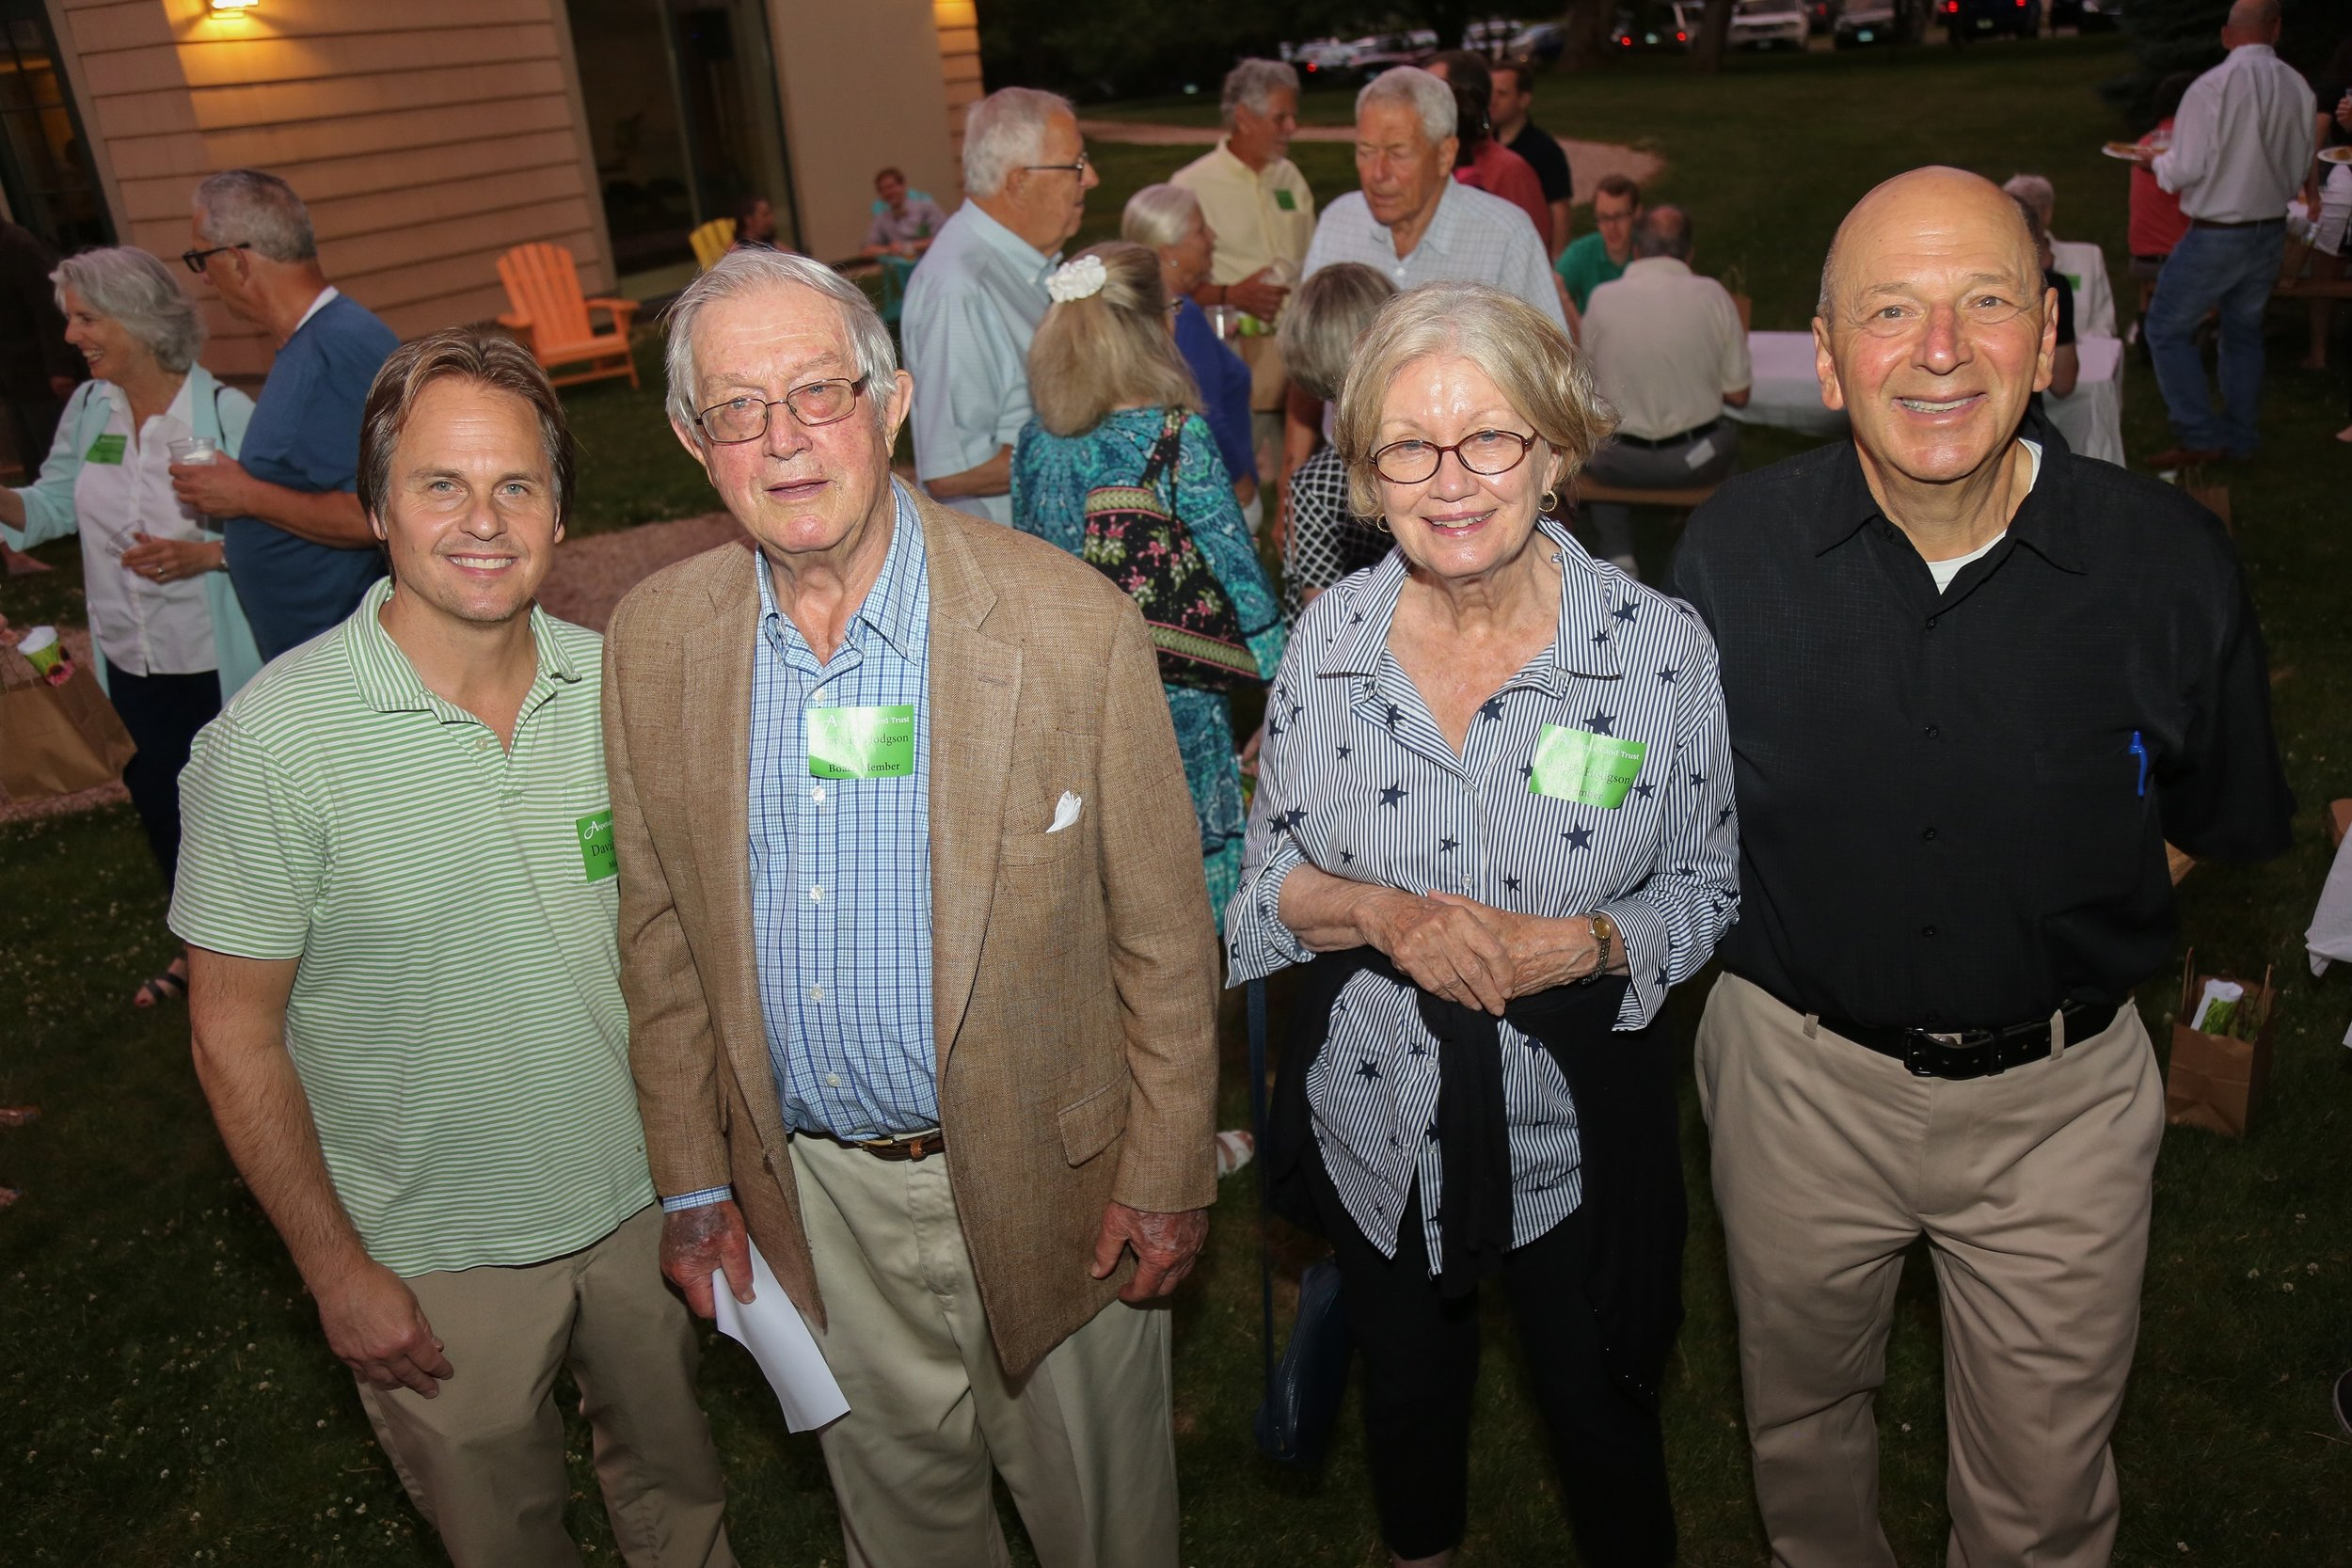 Aspetuck Land Trust Executive Director David Brant, with long-serving retiring board member Raphael and his wife Roberta Hodgson, and Don Hyman, Board President.